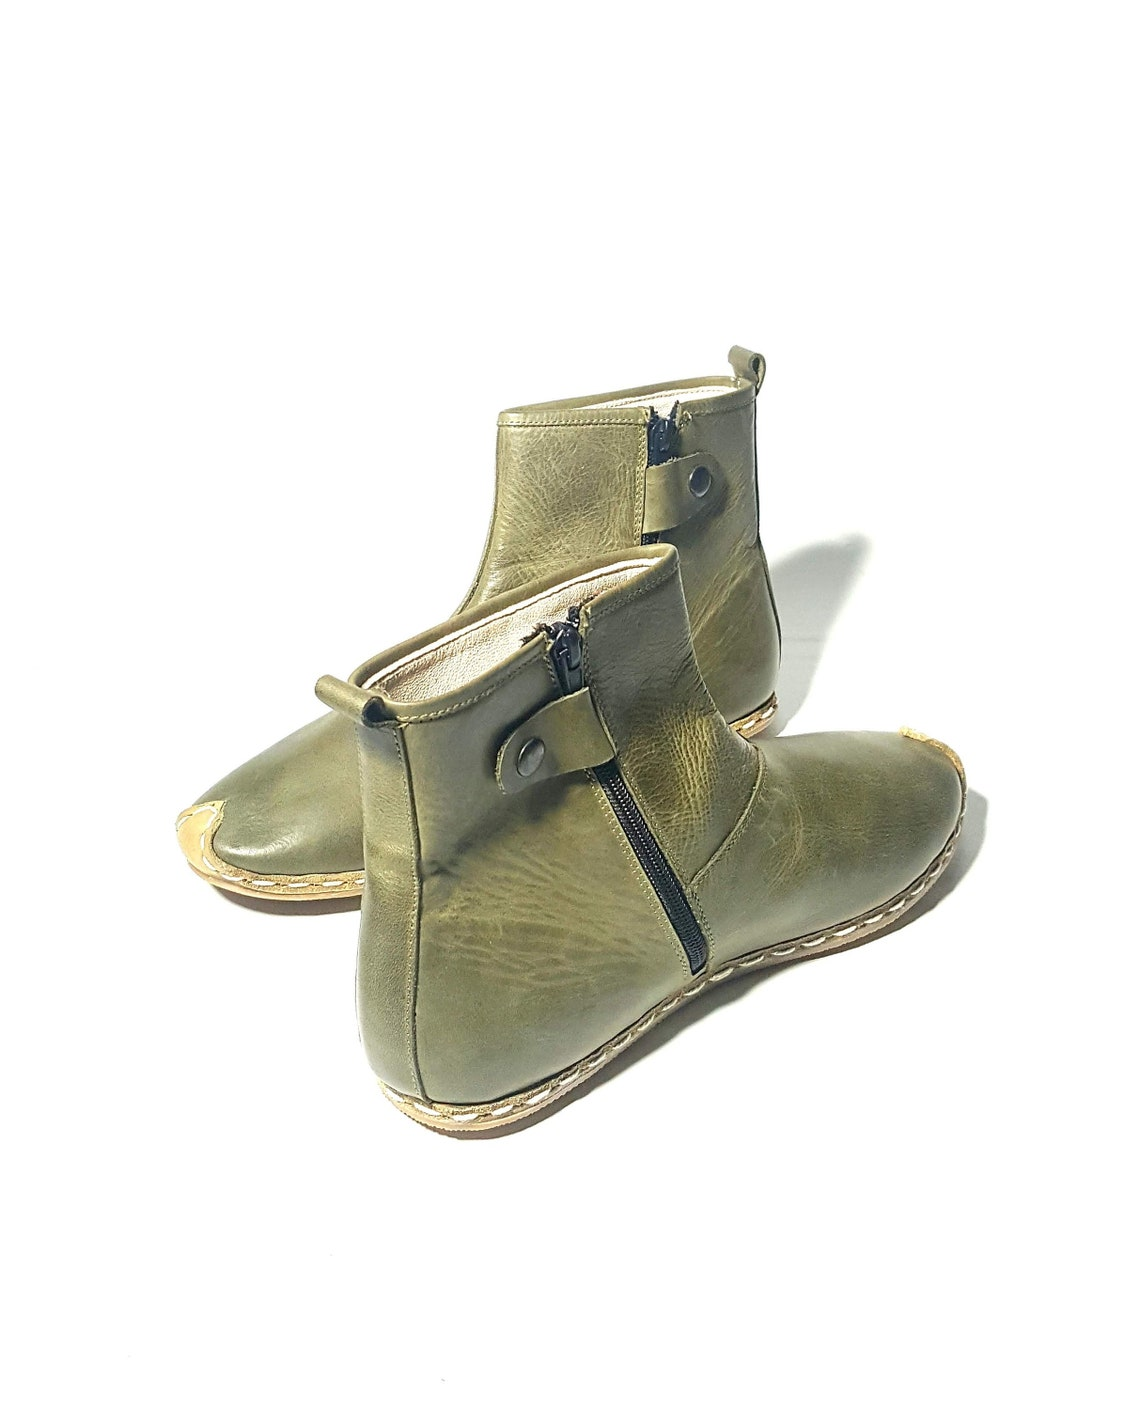 In Stock Handmade Green Women's Boots Organic Dye 100% Leather Flat Slip Ons Women Ankle Booties Boots Earthing Grounding Shoes